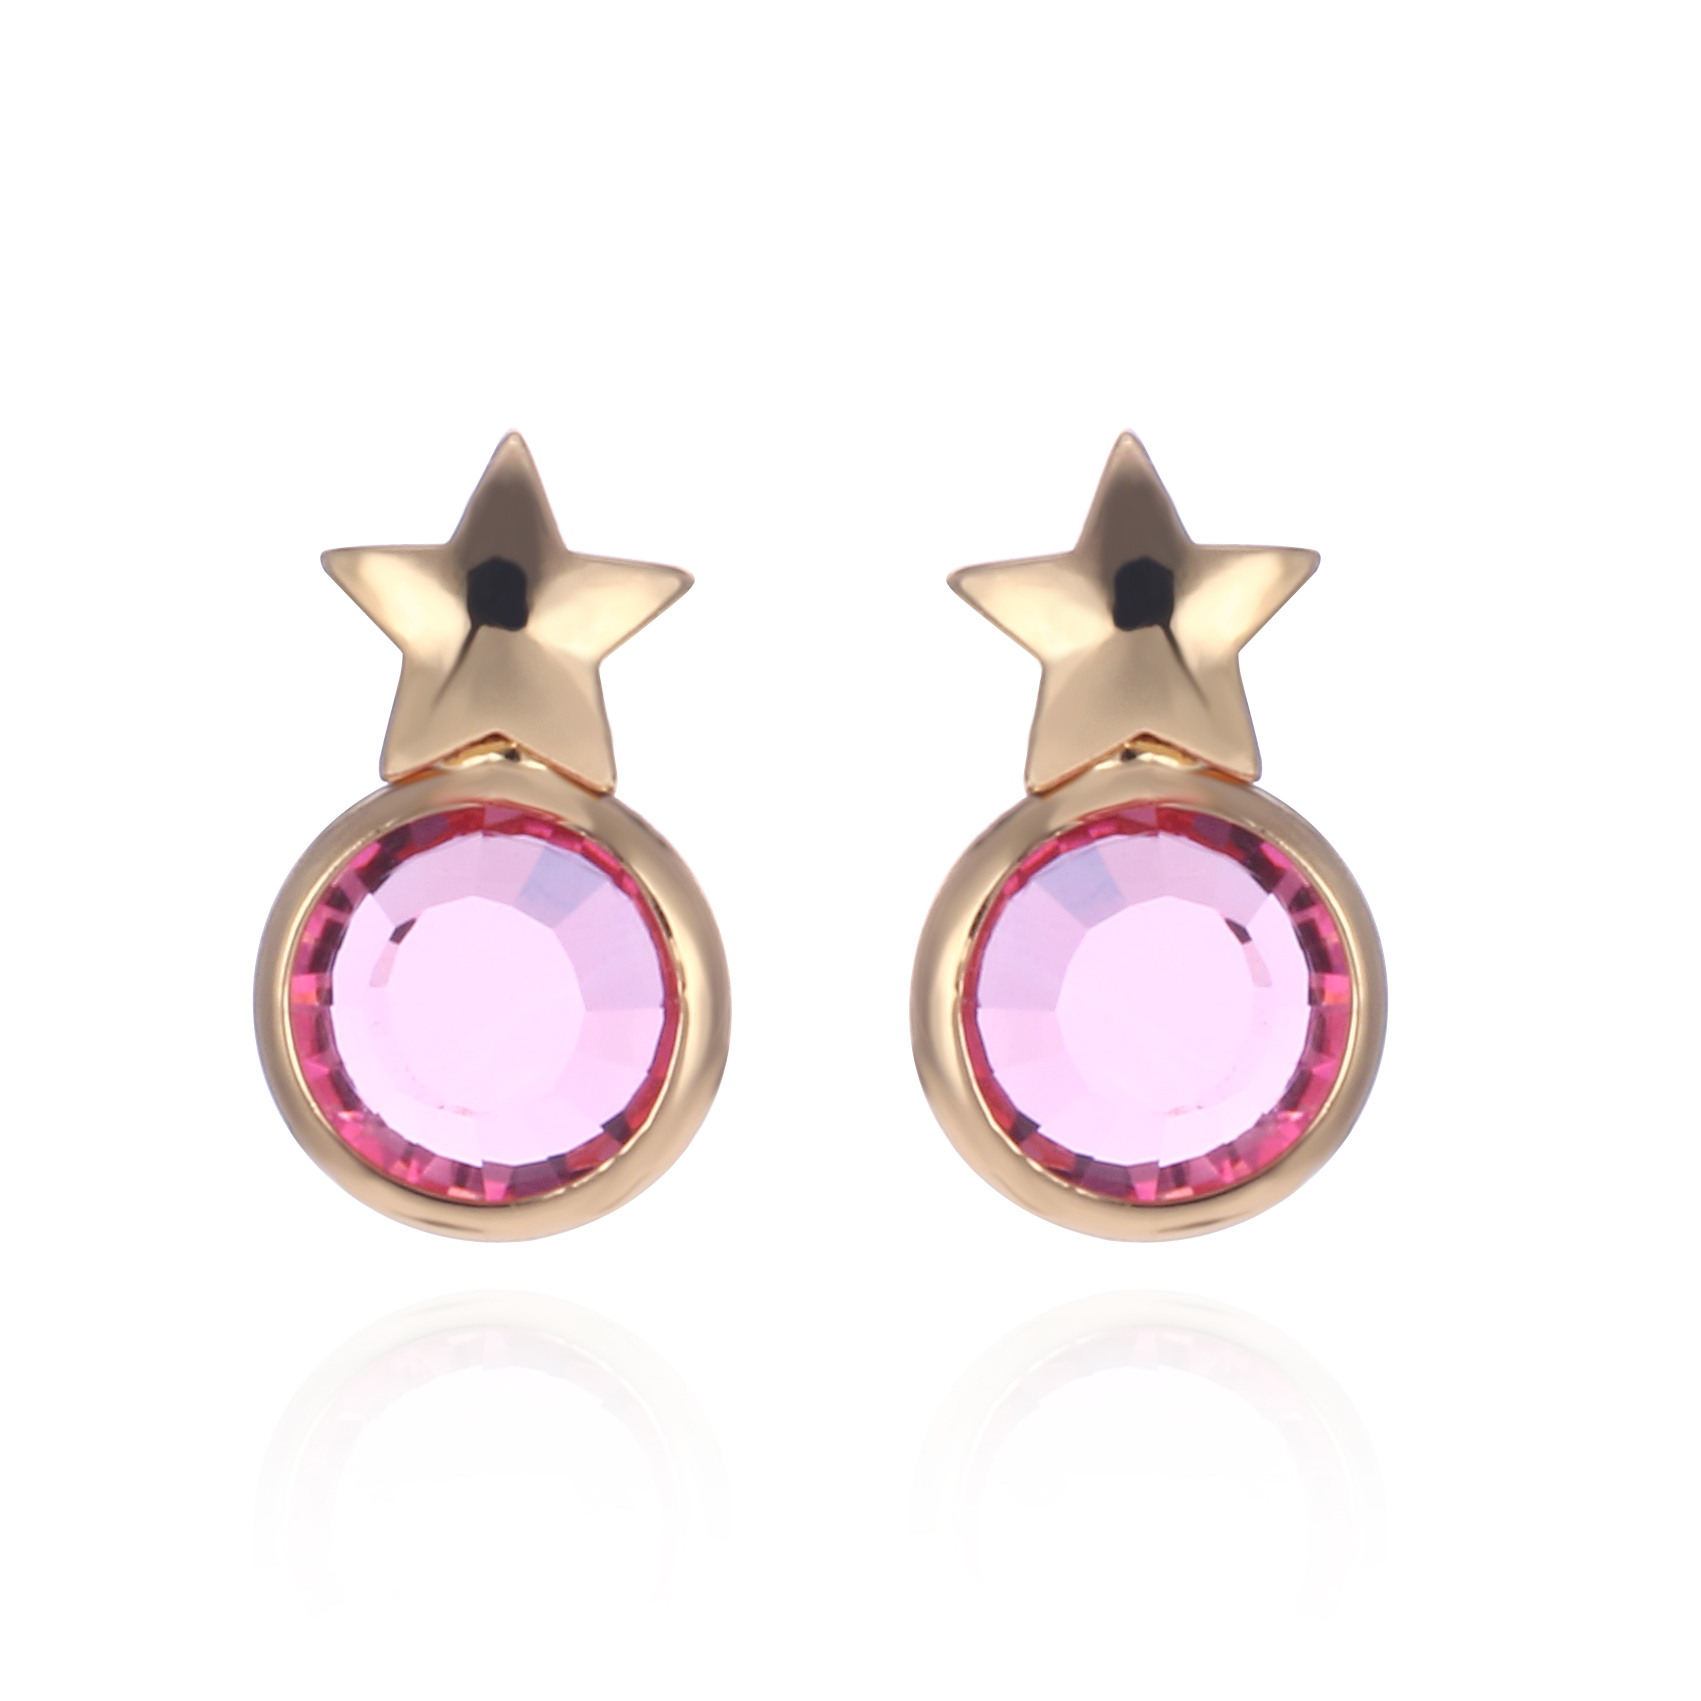 3um Glass Birthstone Stud Earrings Fashion Jewelry Tiny Star Birthstone  Earing For Women Pendientes Oorbellen Brincos 2017 Gift